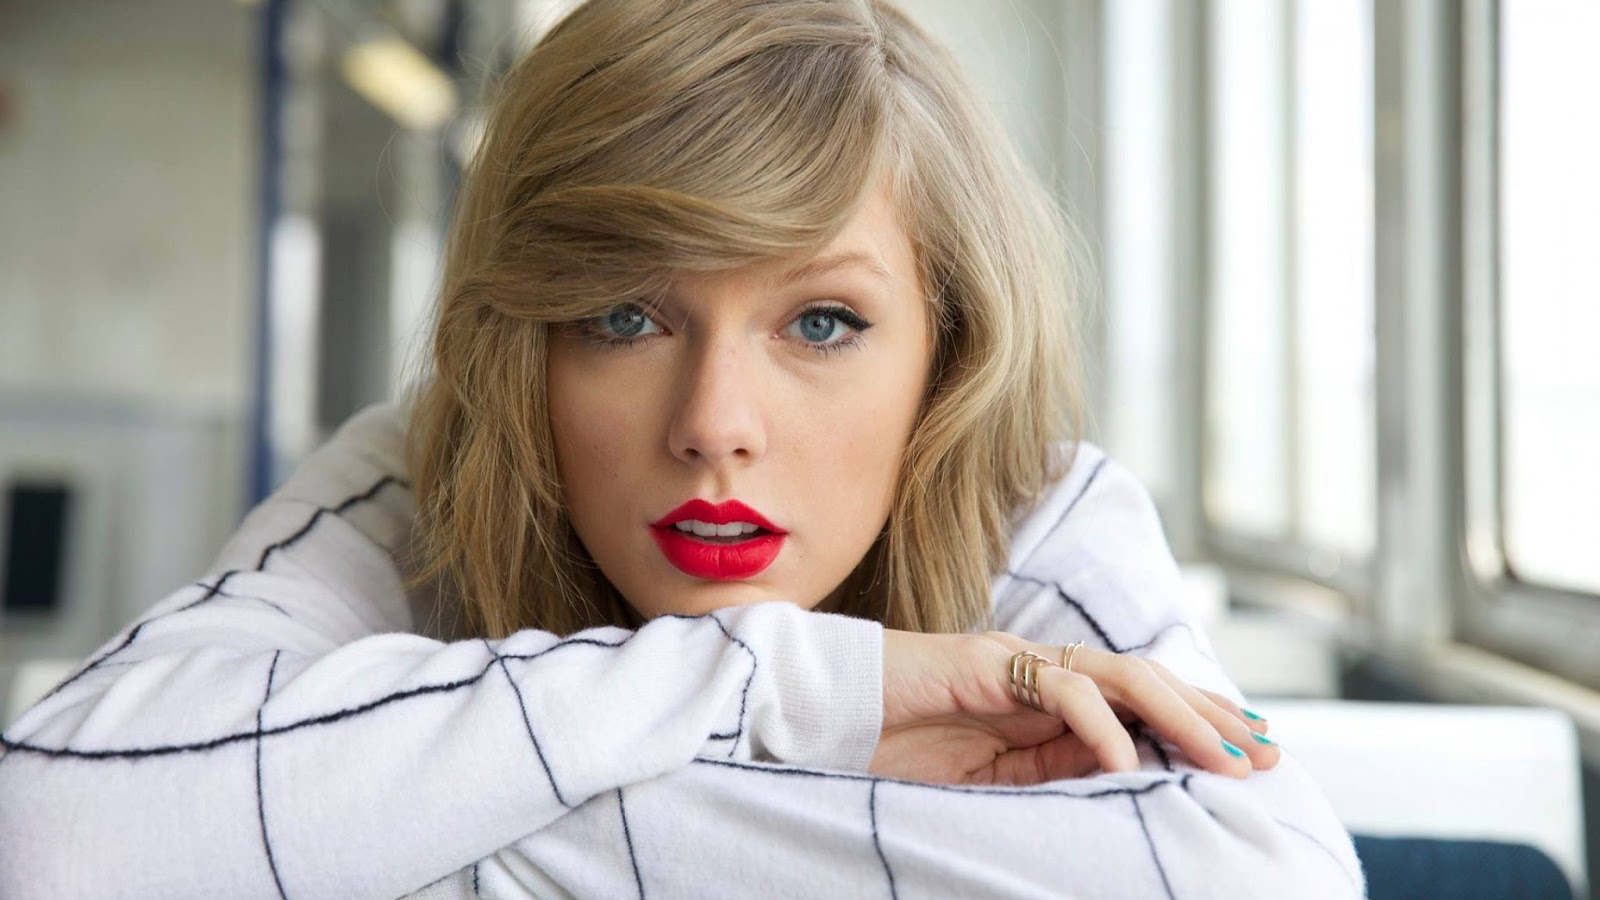 gorgeous taylor swift hd wallpaper & pics